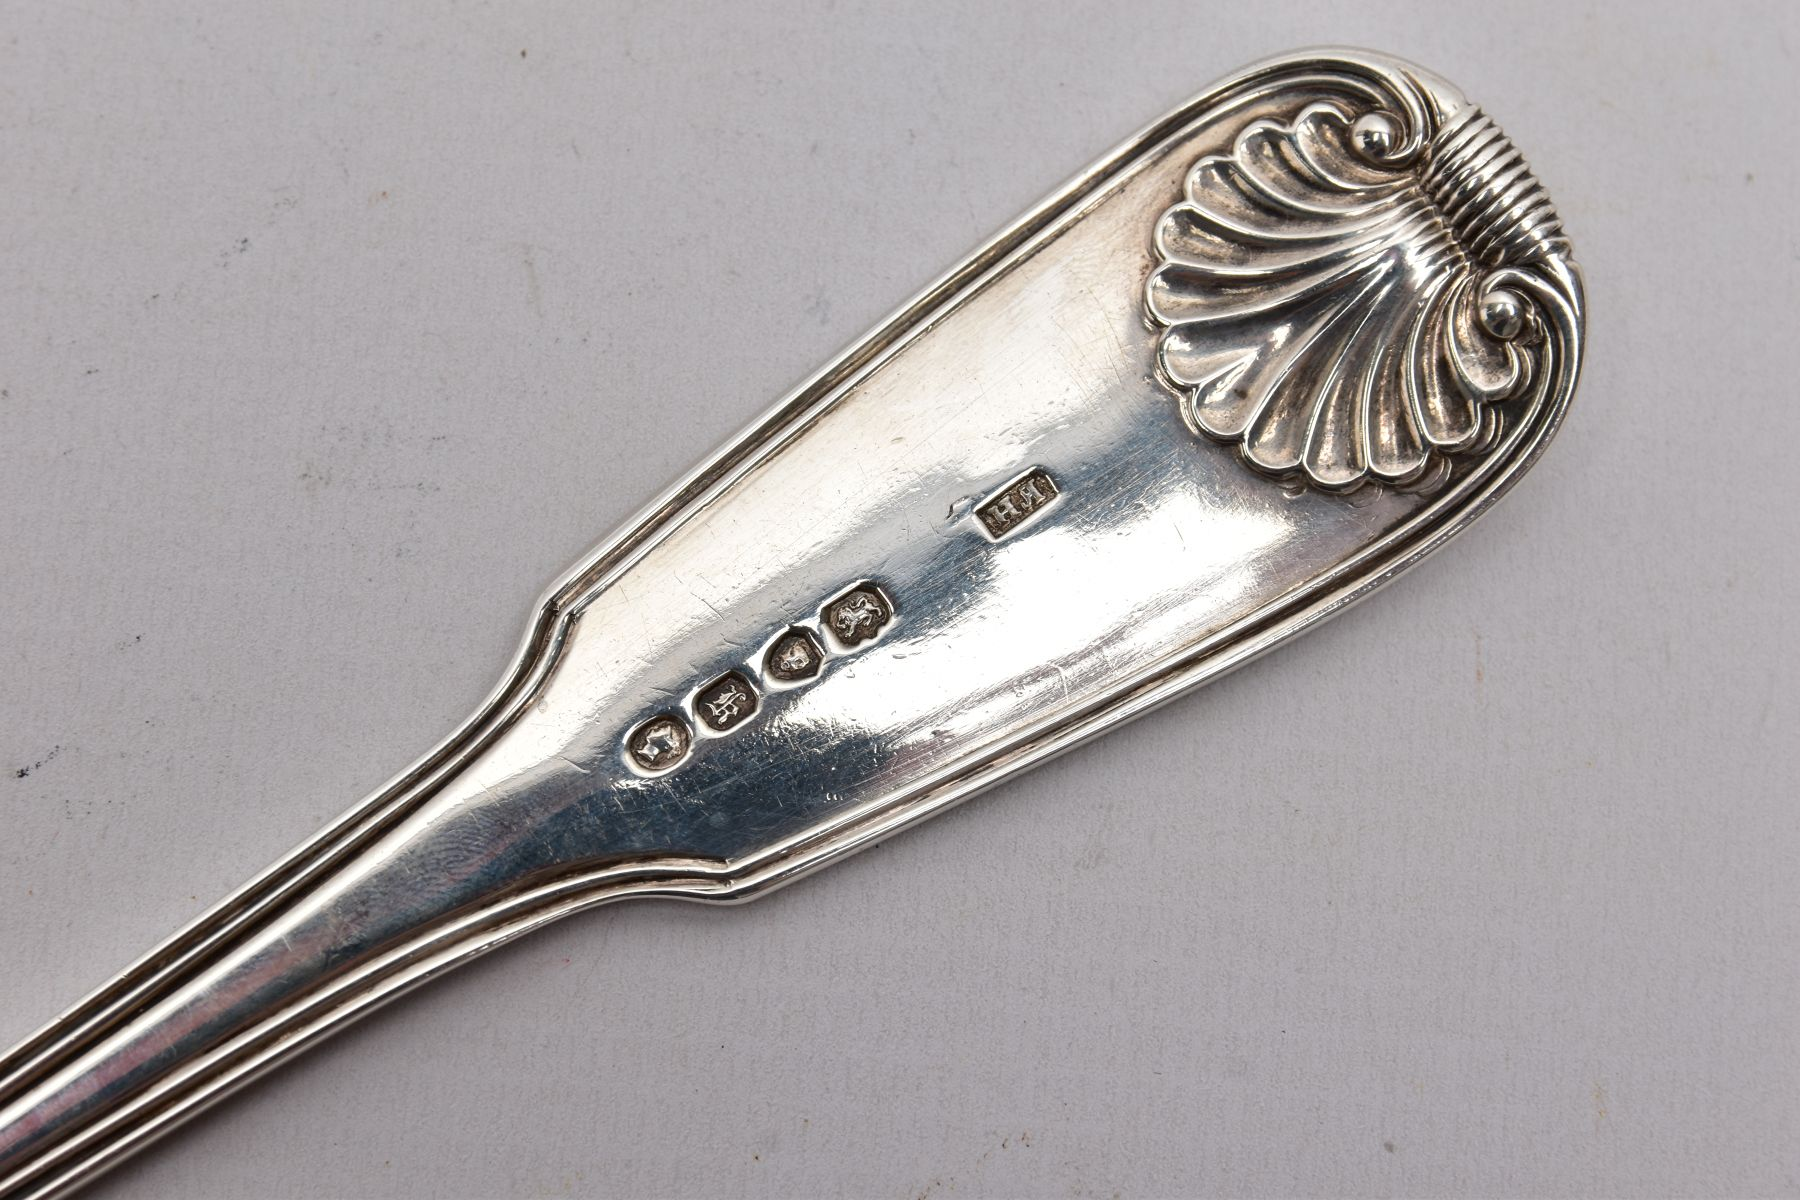 AN EARLY VICTORIAN LARGE SILVER SERVING SPOON, kings pattern design with a reeded rim, engraved - Image 4 of 4